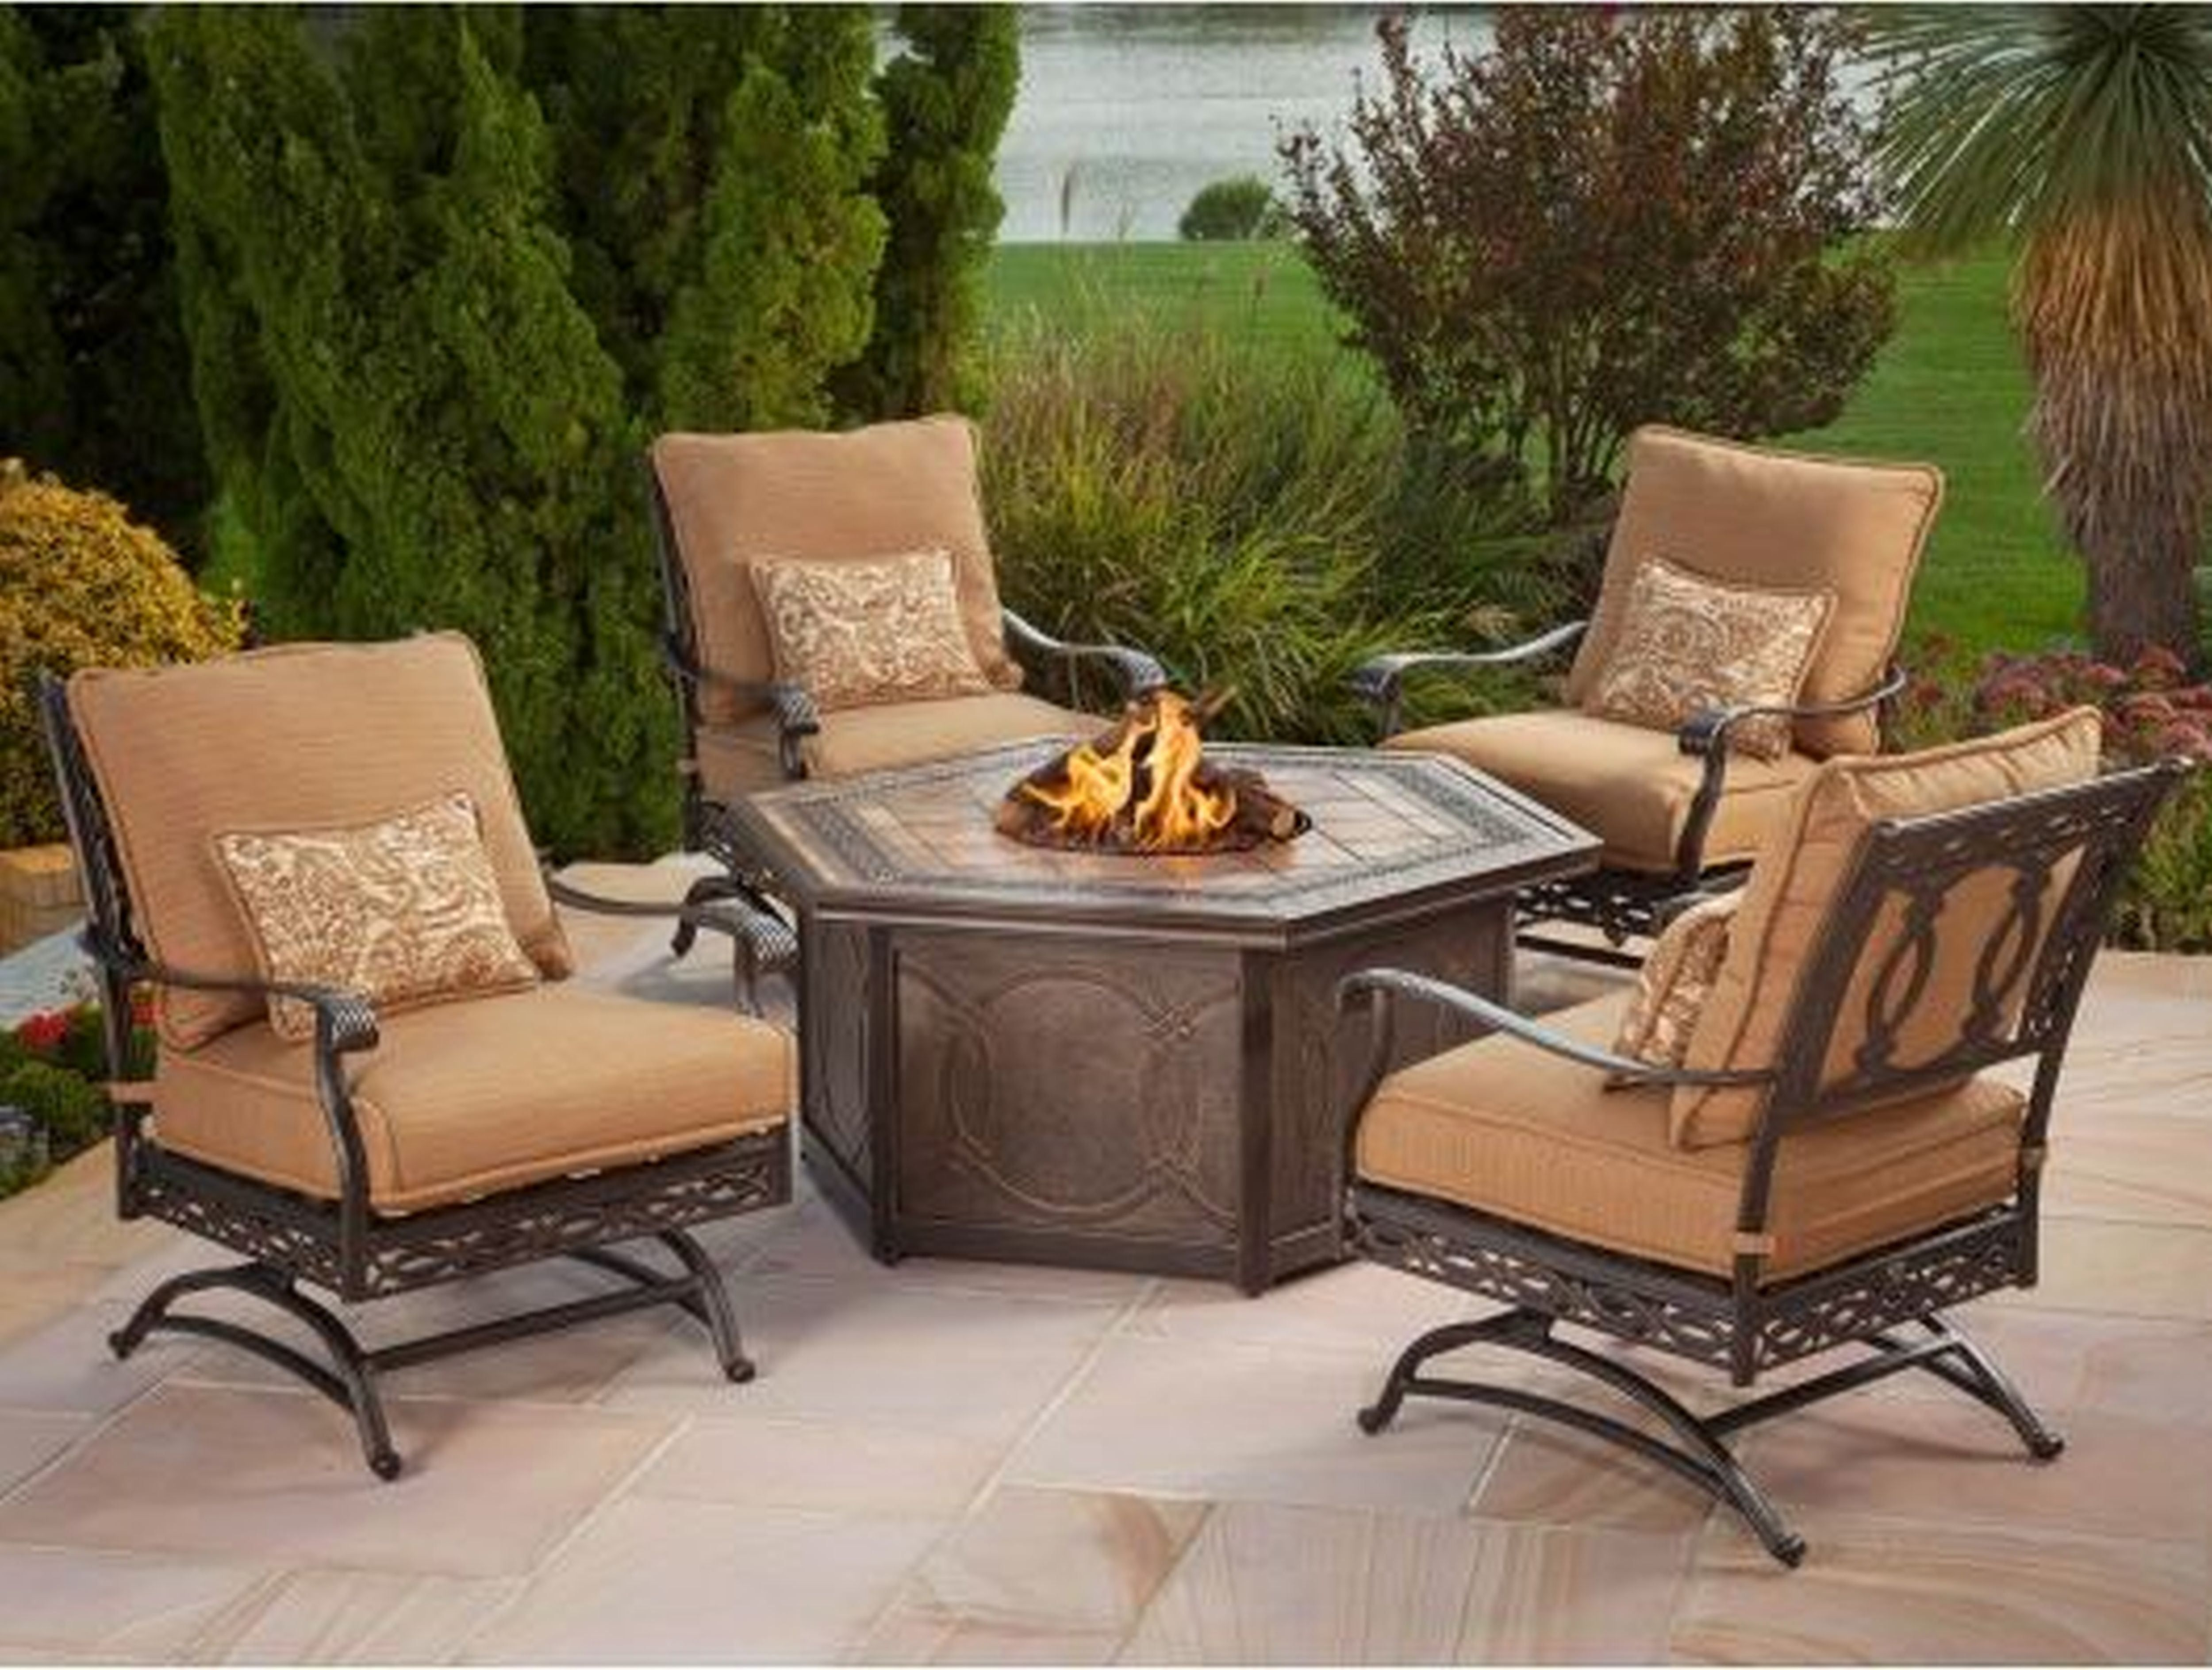 Clearance Outdoor Furniture Clearance Patio Furniture Cool Patio Chairs Clear In 2020 Clearance Outdoor Furniture Patio Furniture For Sale Outdoor Patio Furniture Sets